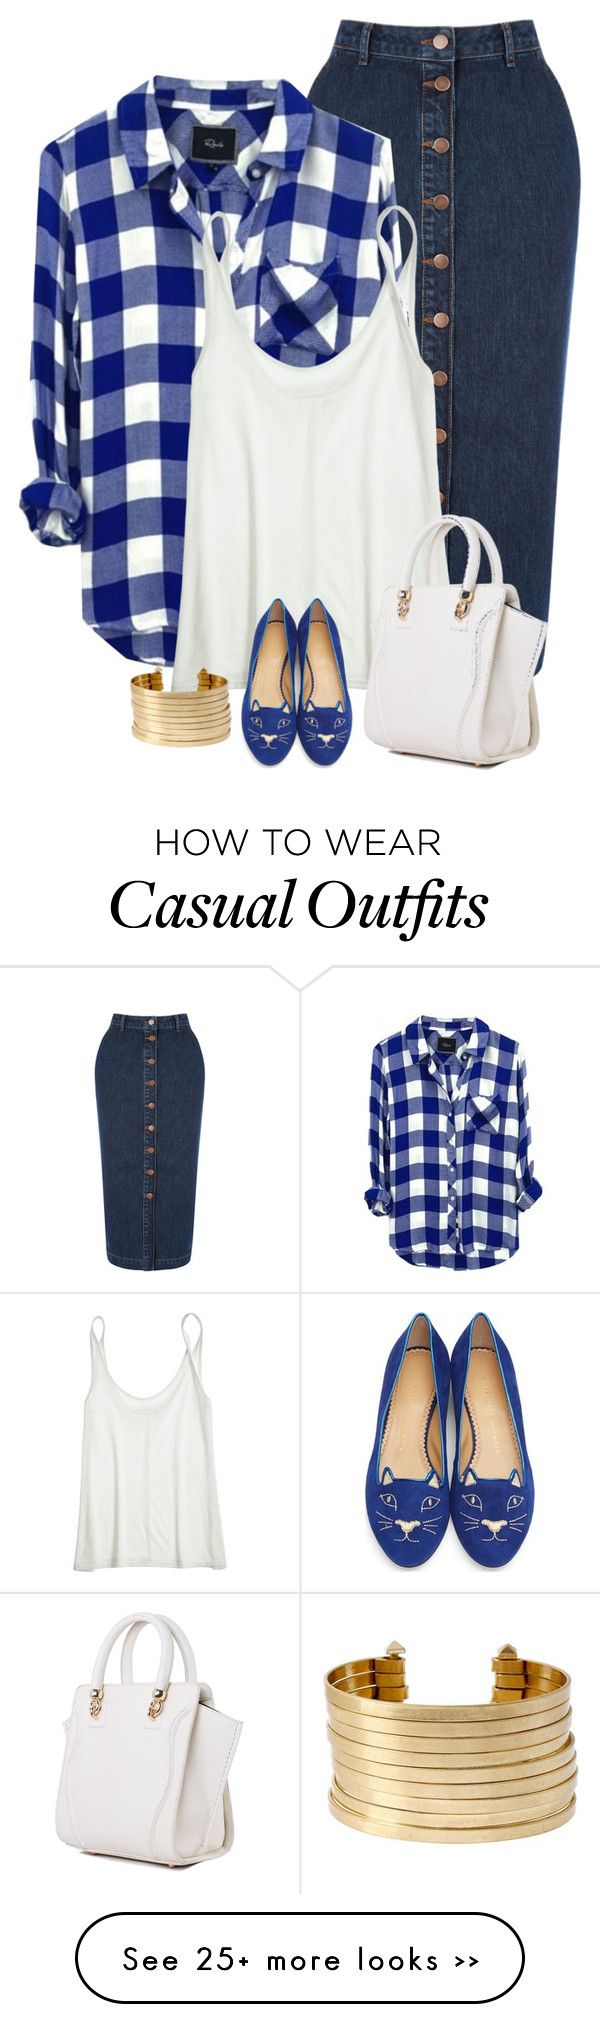 """casual look"" by divacrafts on Polyvore"